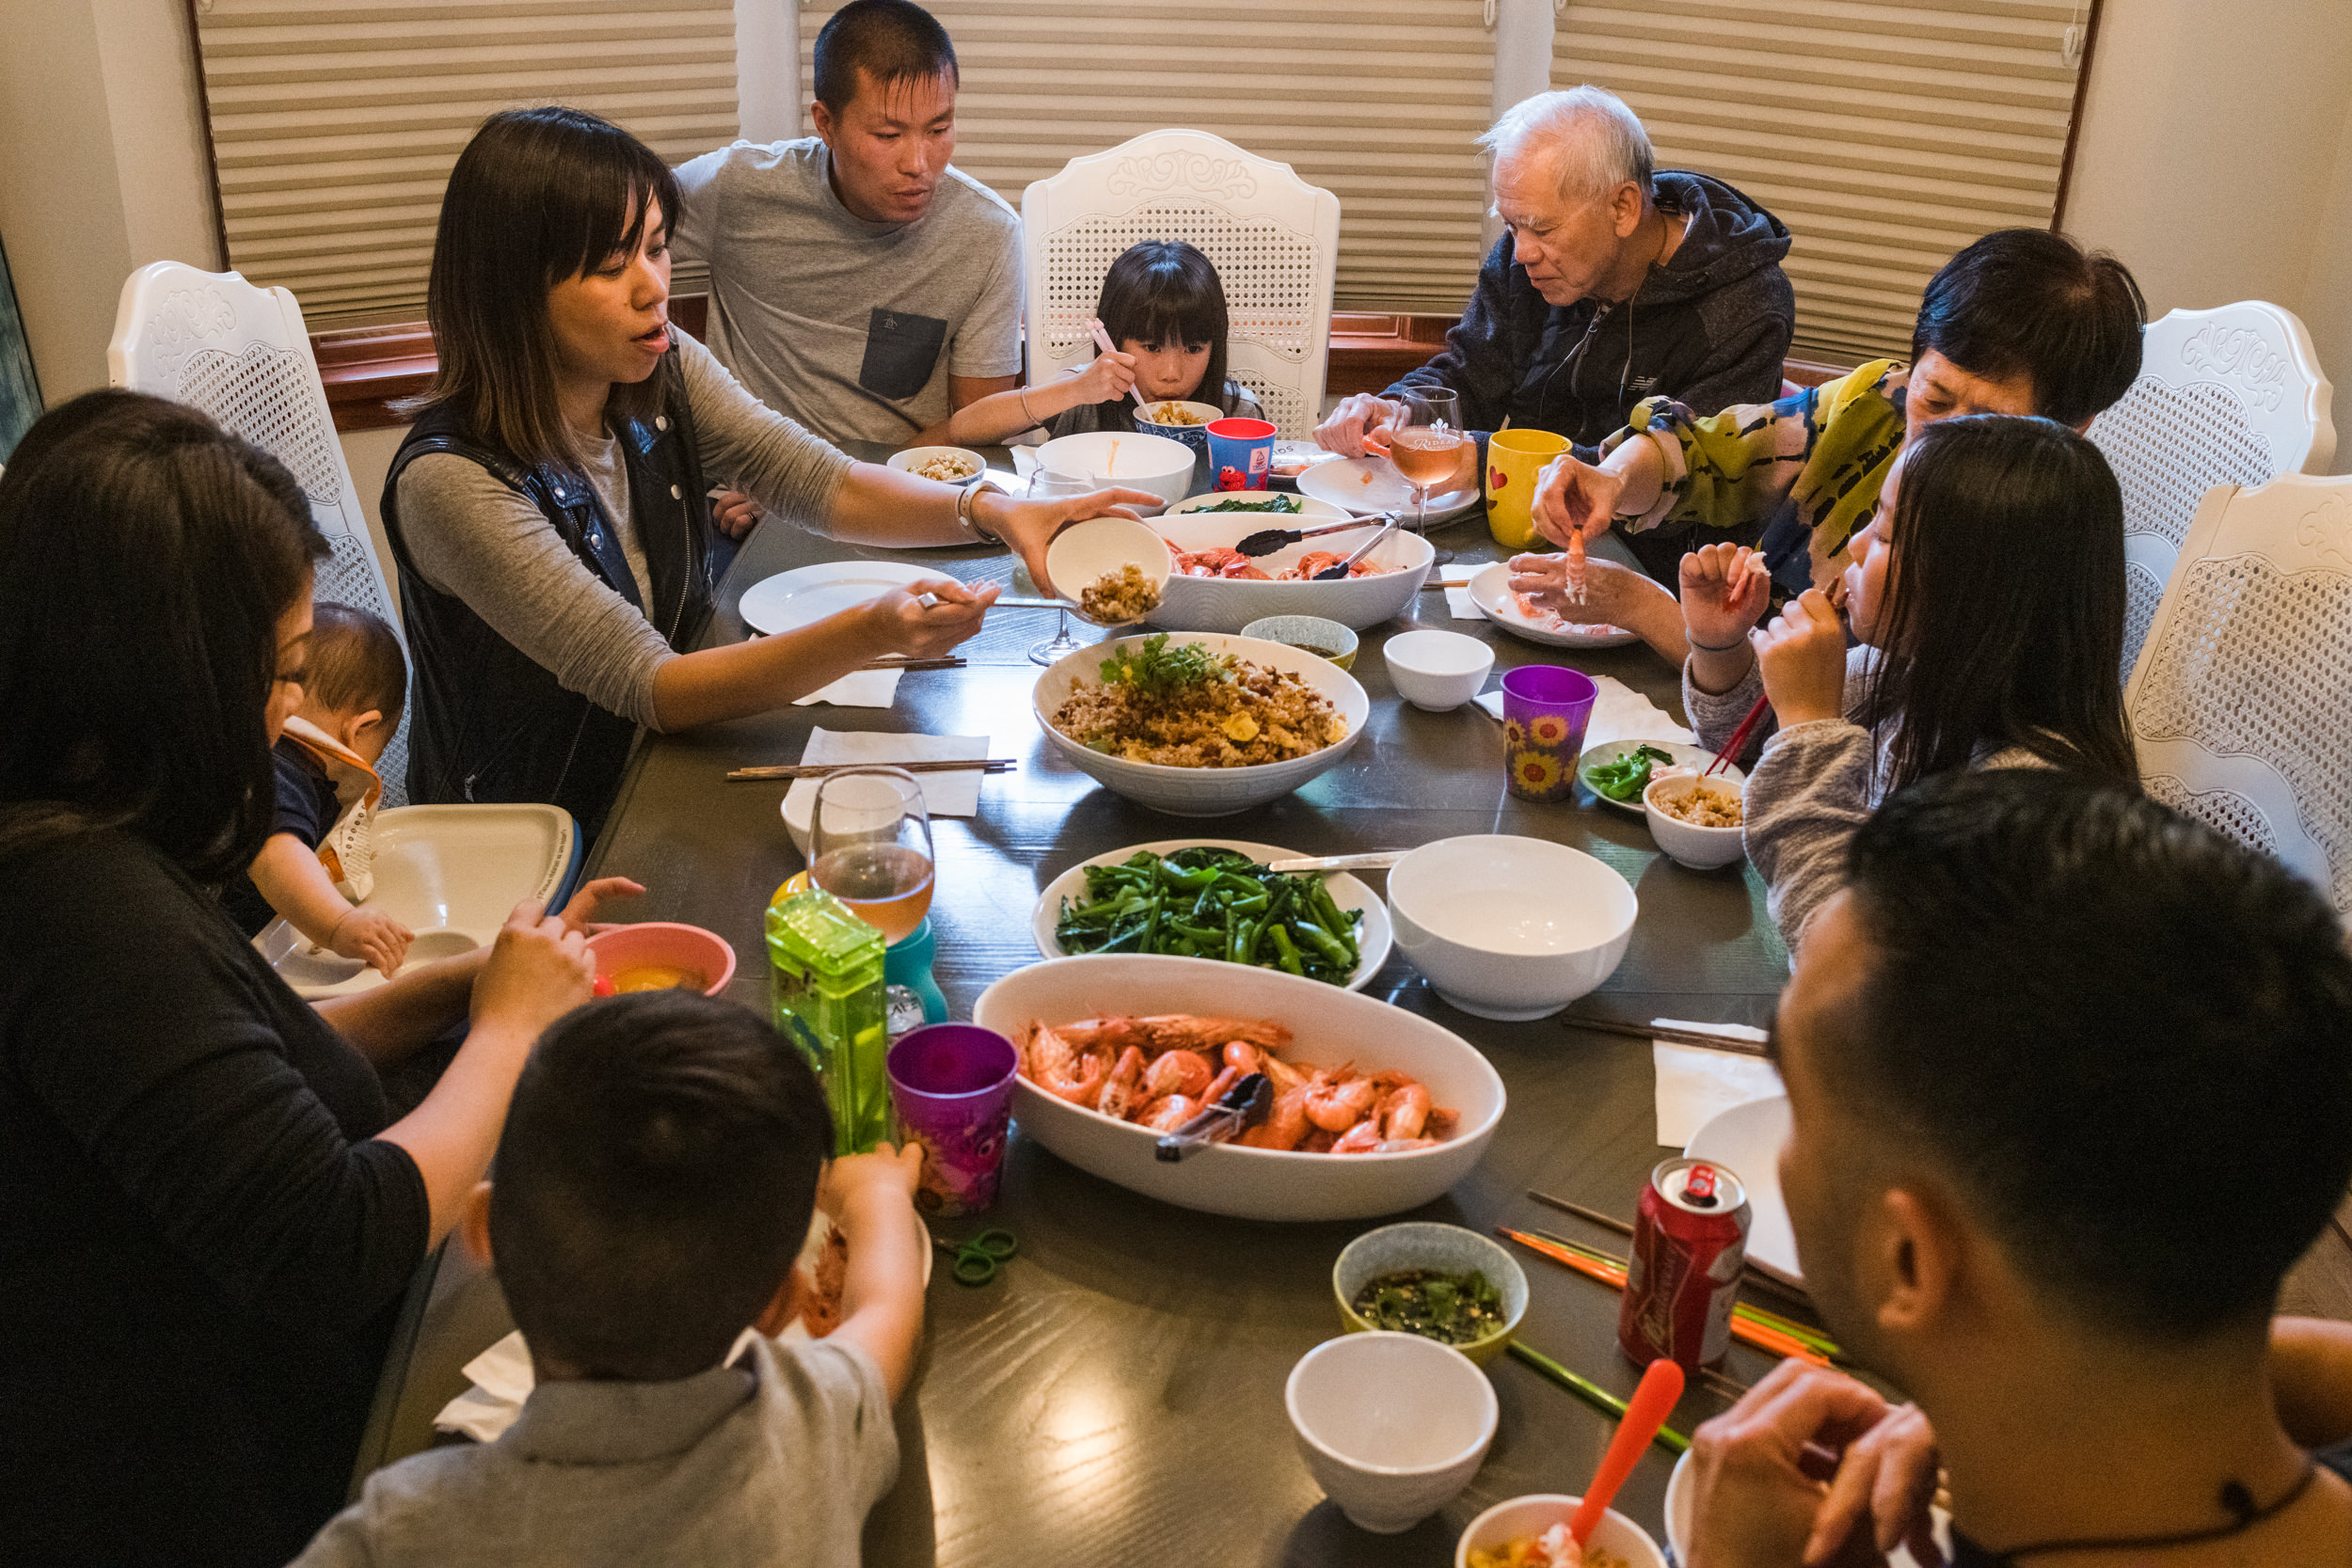 It is spot prawn season and an extended family gathers around the dining table to share a Chinese meal between grandparents, parents, and grandchildren.